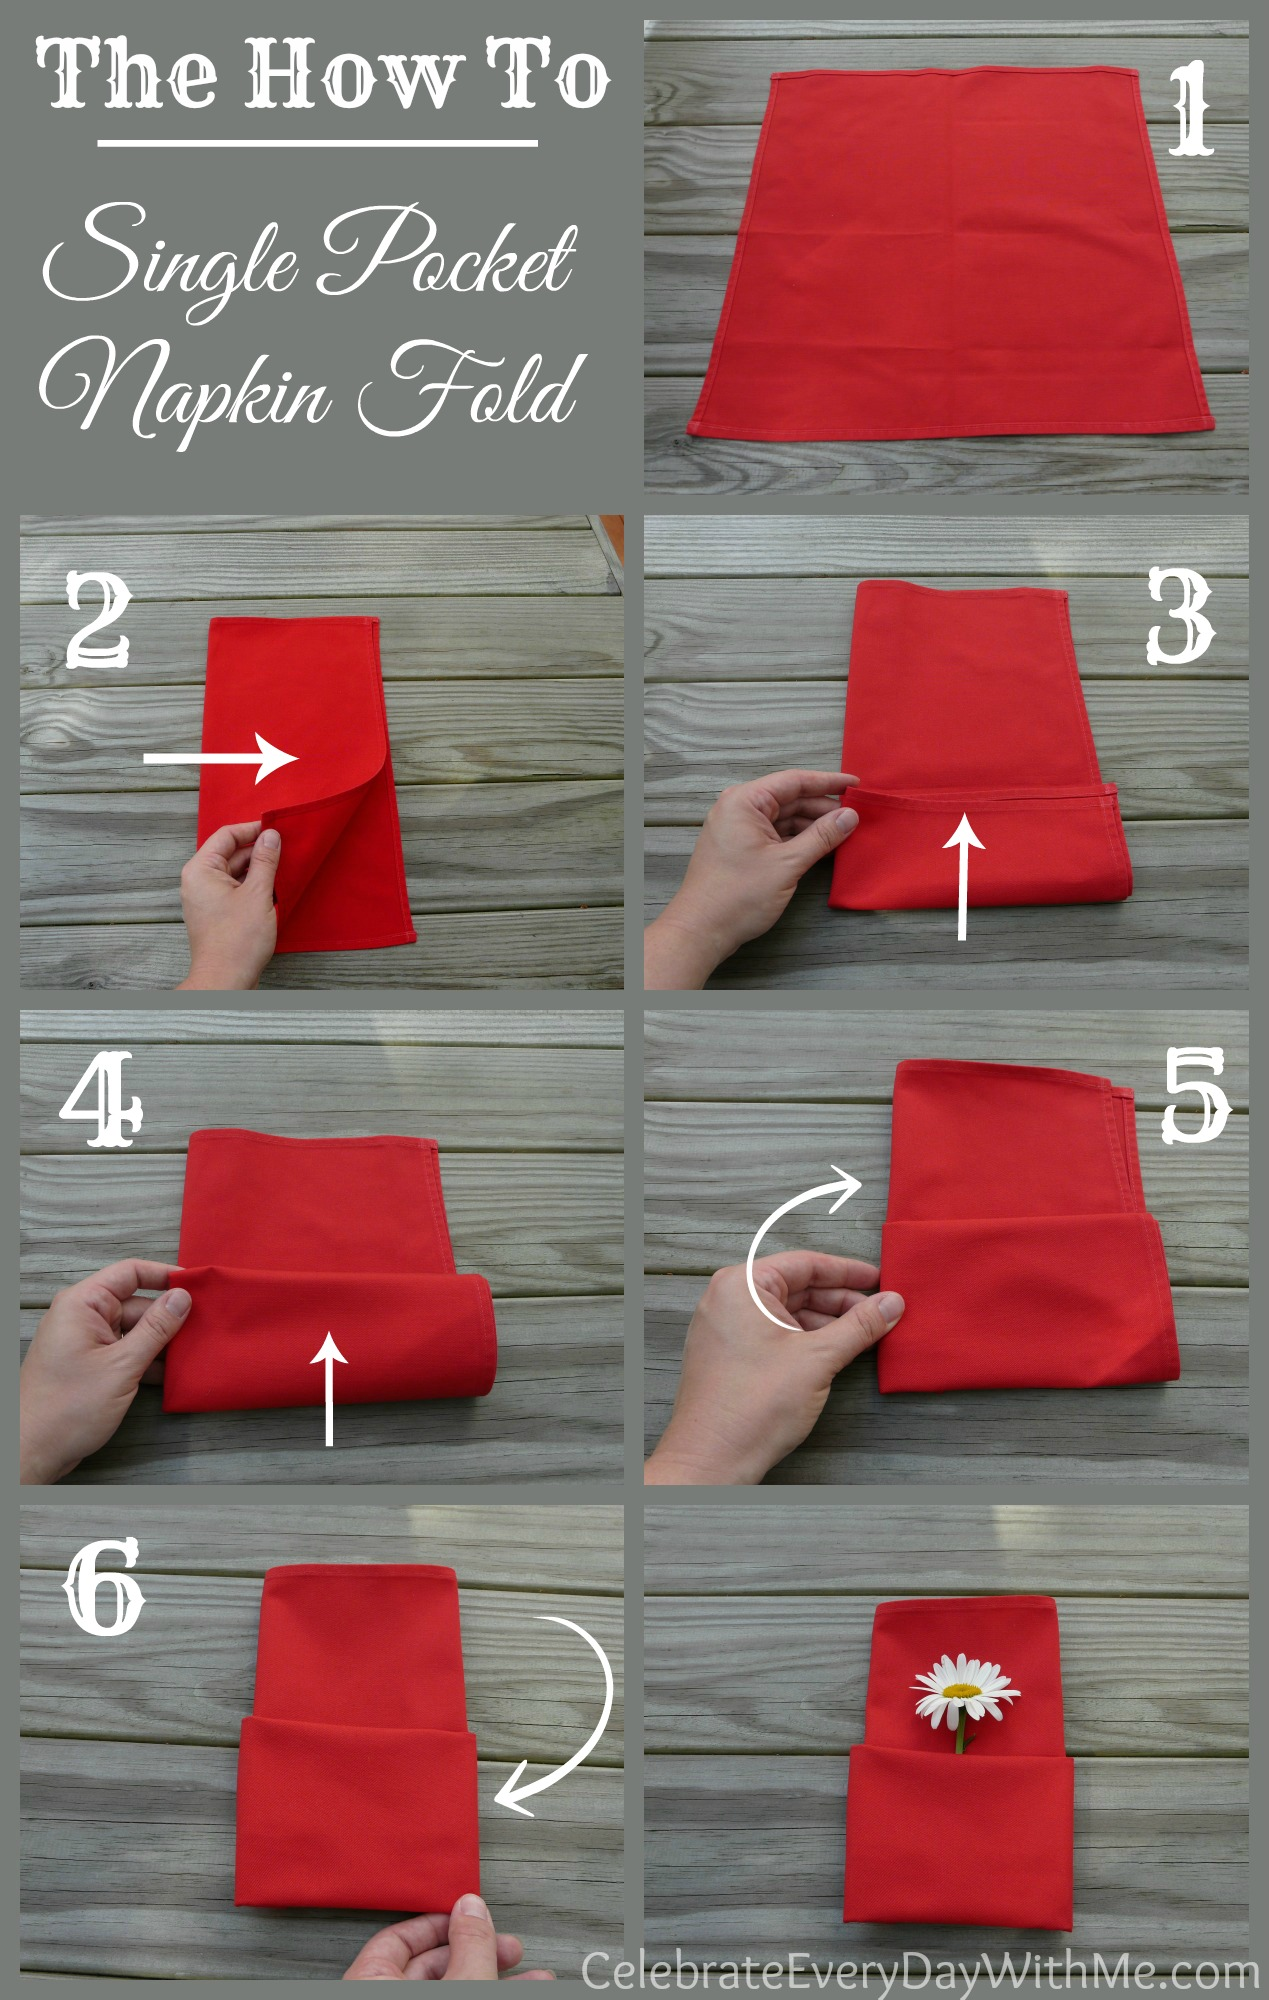 Single Pocket Napkin Fold For Summer Entertaining Ef 5 Celebrate Every Day With Me